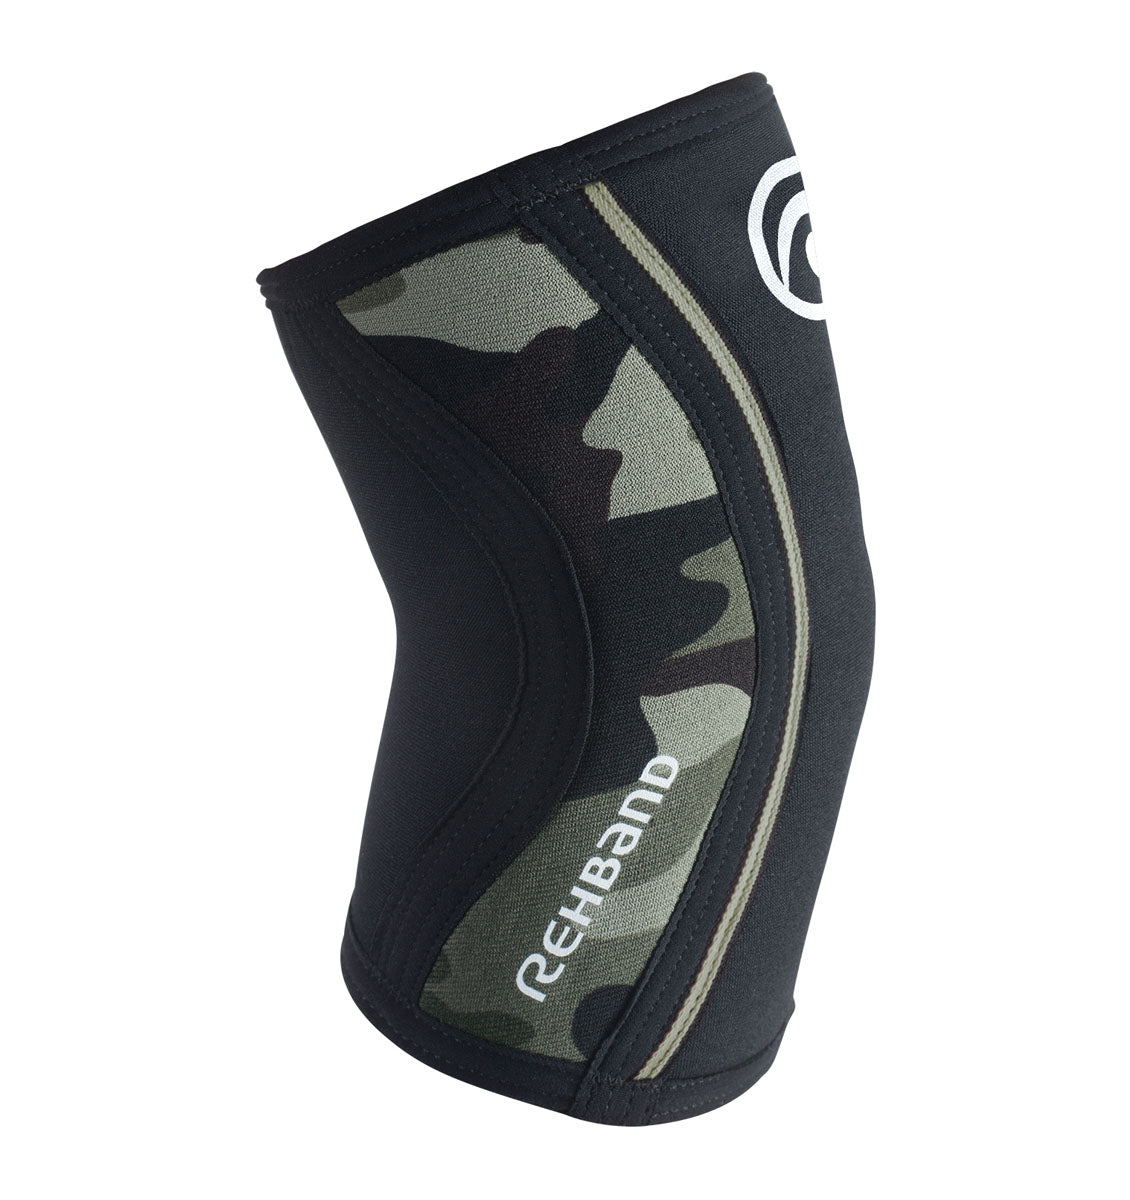 102331 - Rehband Rx Elbow Sleeve - Camo - 5mm/3mm - Side